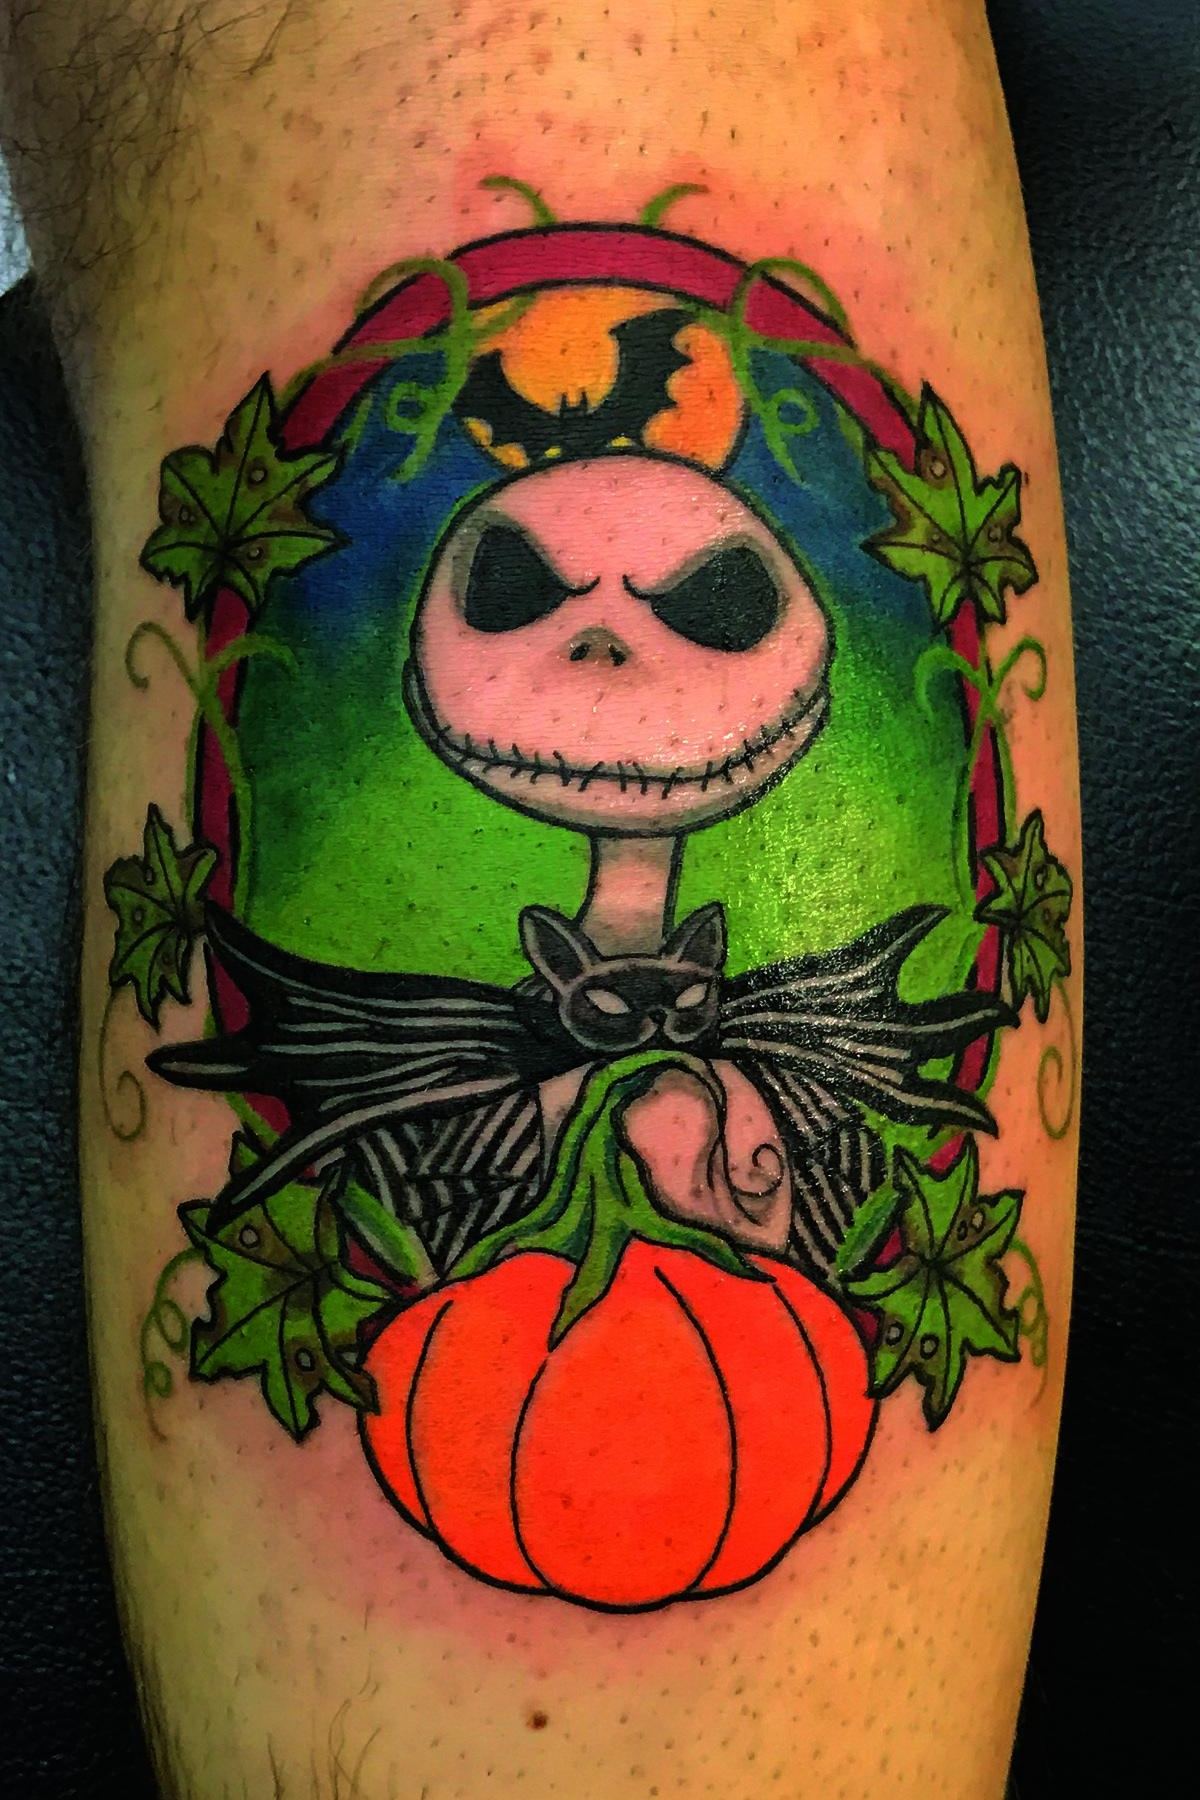 'Nightmare before Christmas' themed tattoo on calf in color. Jack the pumpkin king. Half leg sleeve.